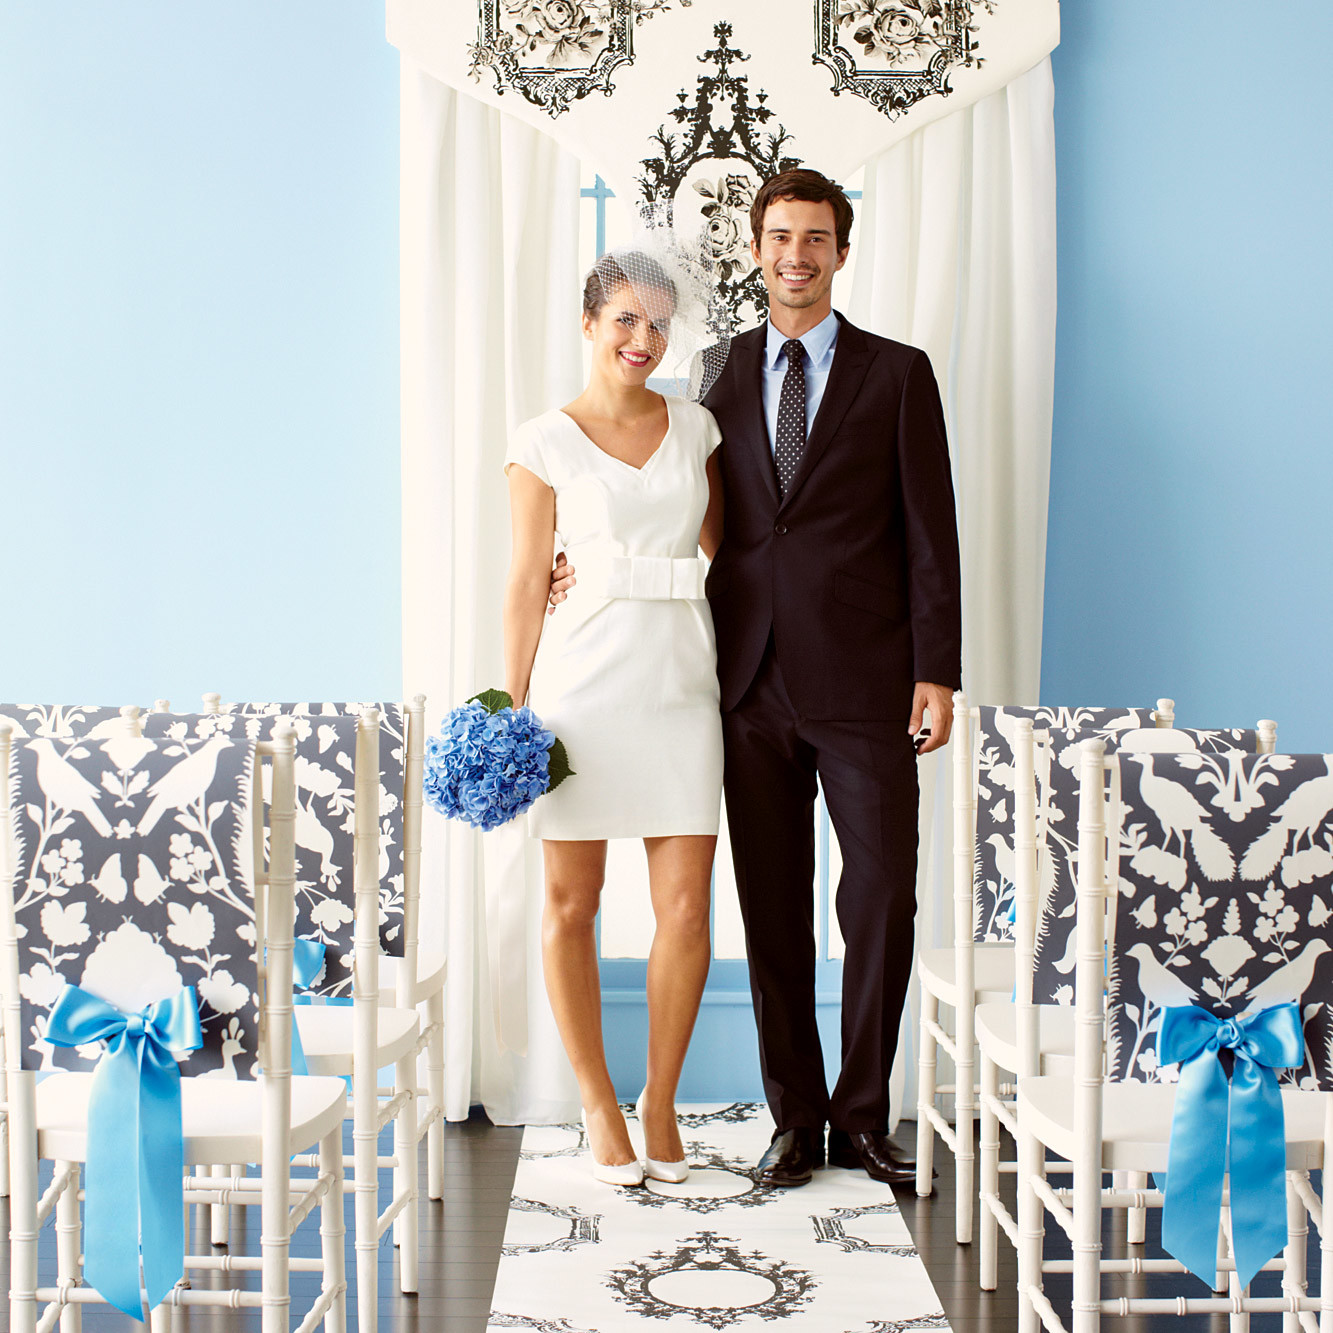 how to make easy chair covers for wedding reclining and ottoman diy decorations using wallpaper martha stewart weddings